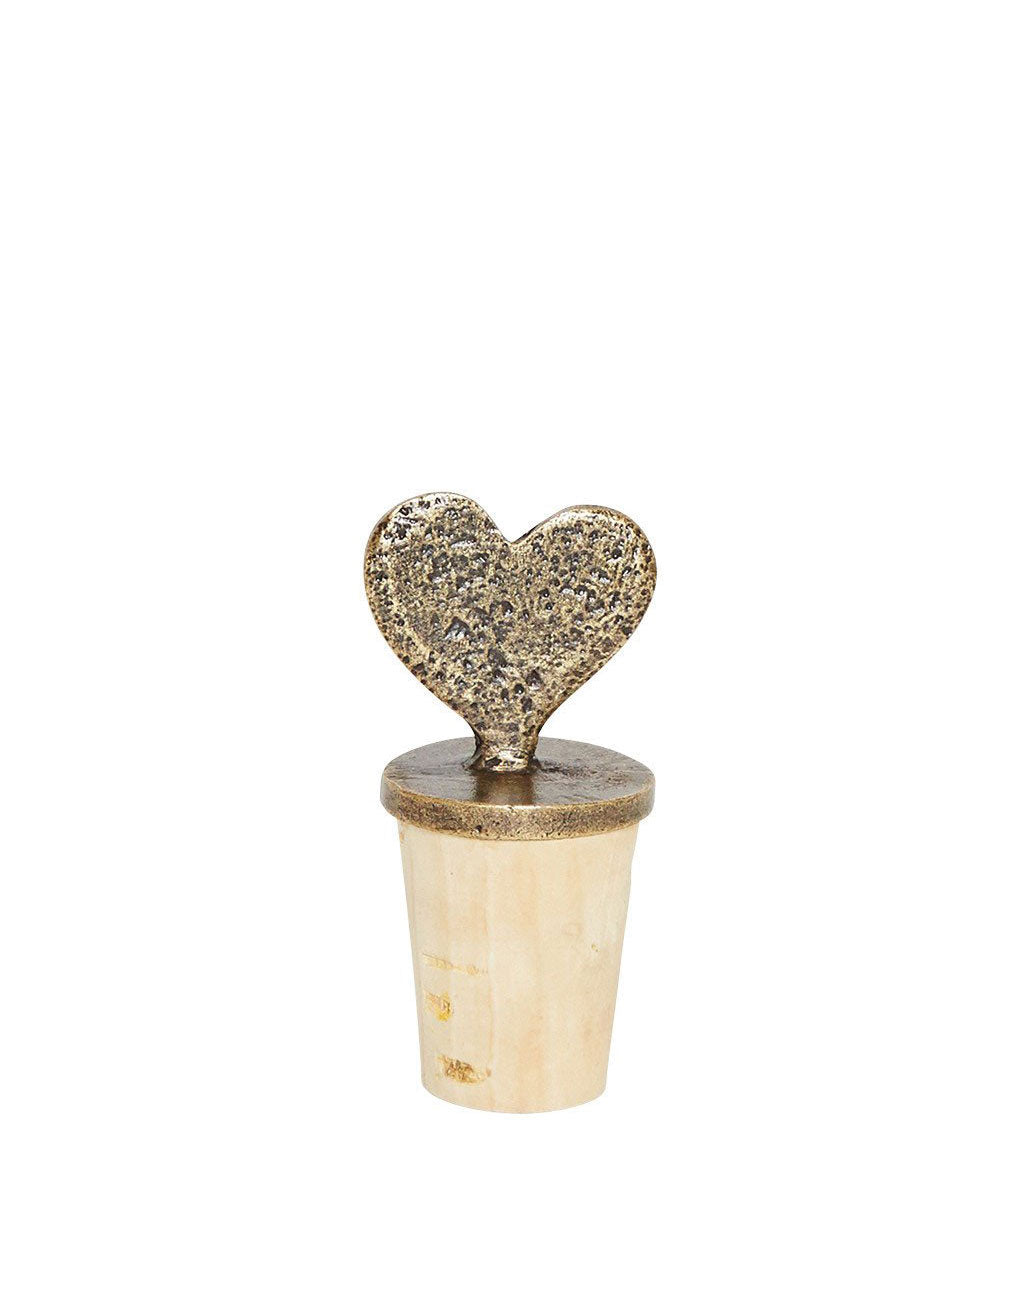 Heart Wine Bottle Stopper | The Little Market